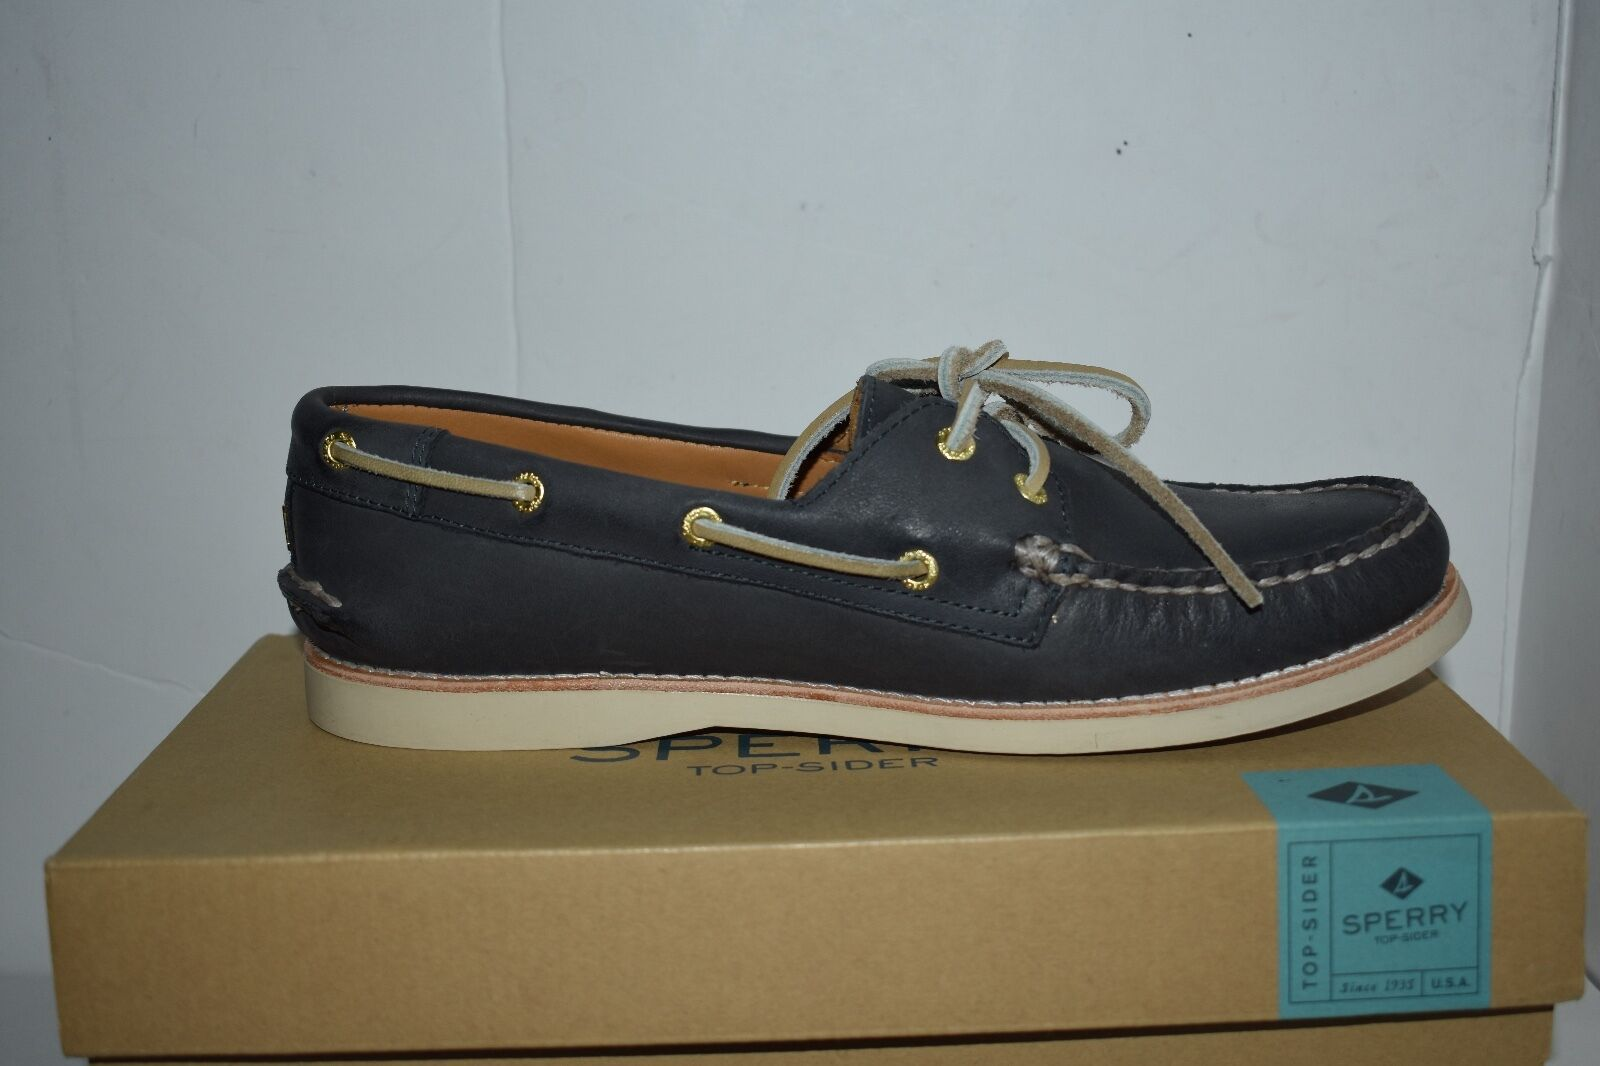 Sperry Top-Sider gold Cup Cup Cup A O 2-Eye bluee Womens shoes 10 M Flats MSRP  159.95 629b87